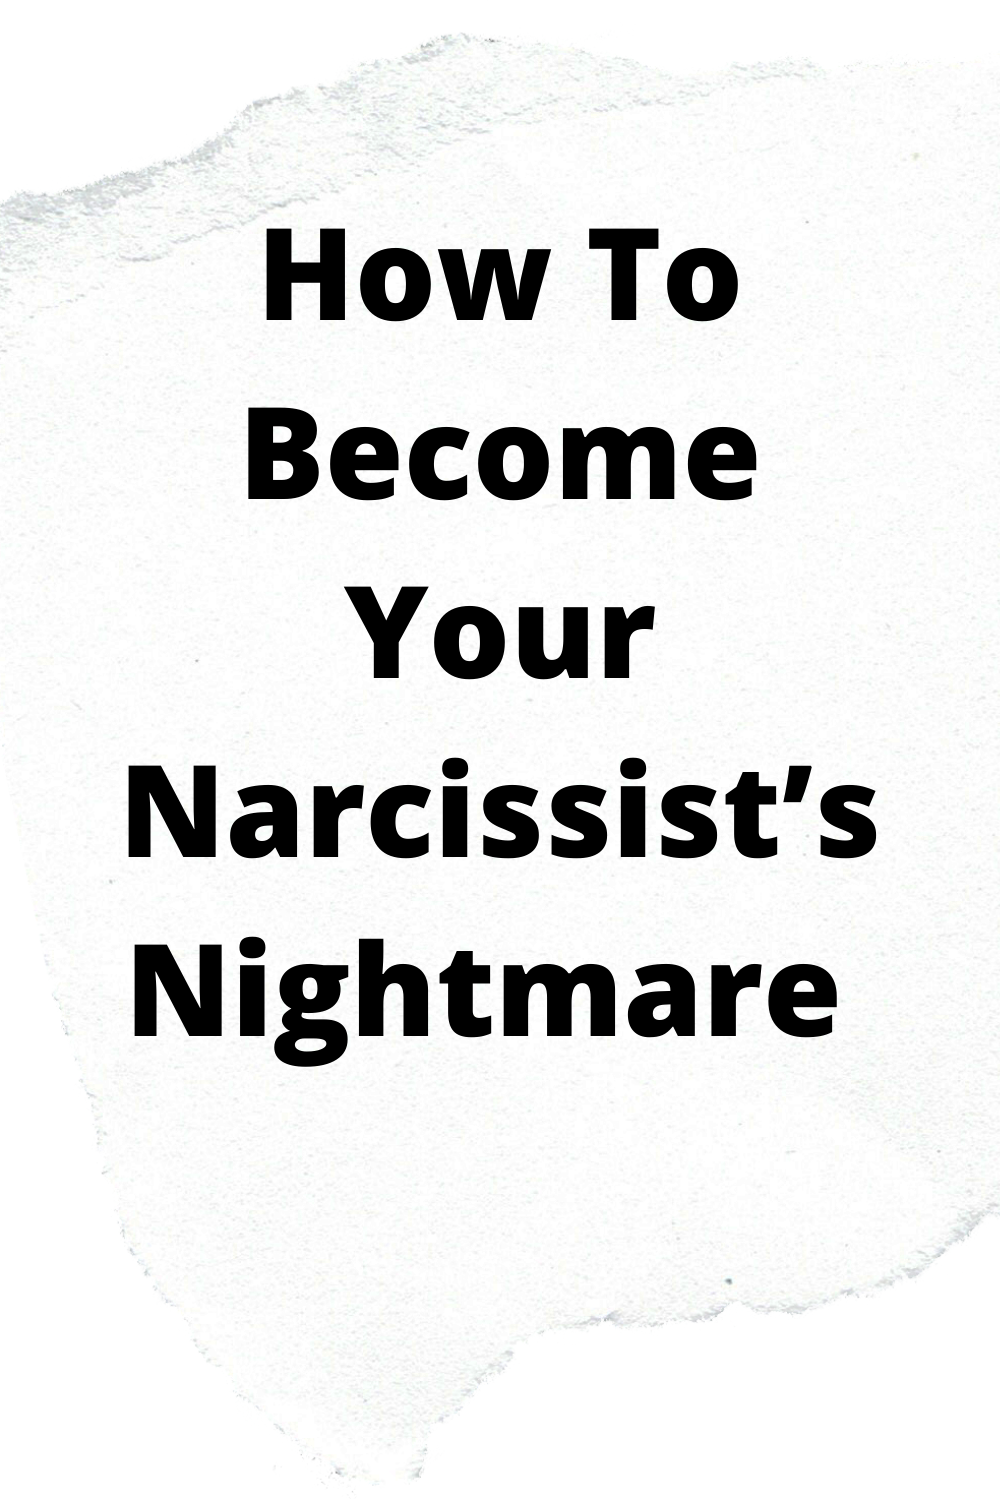 How To Become Your Narcissist's Nightmare in 2020 (With